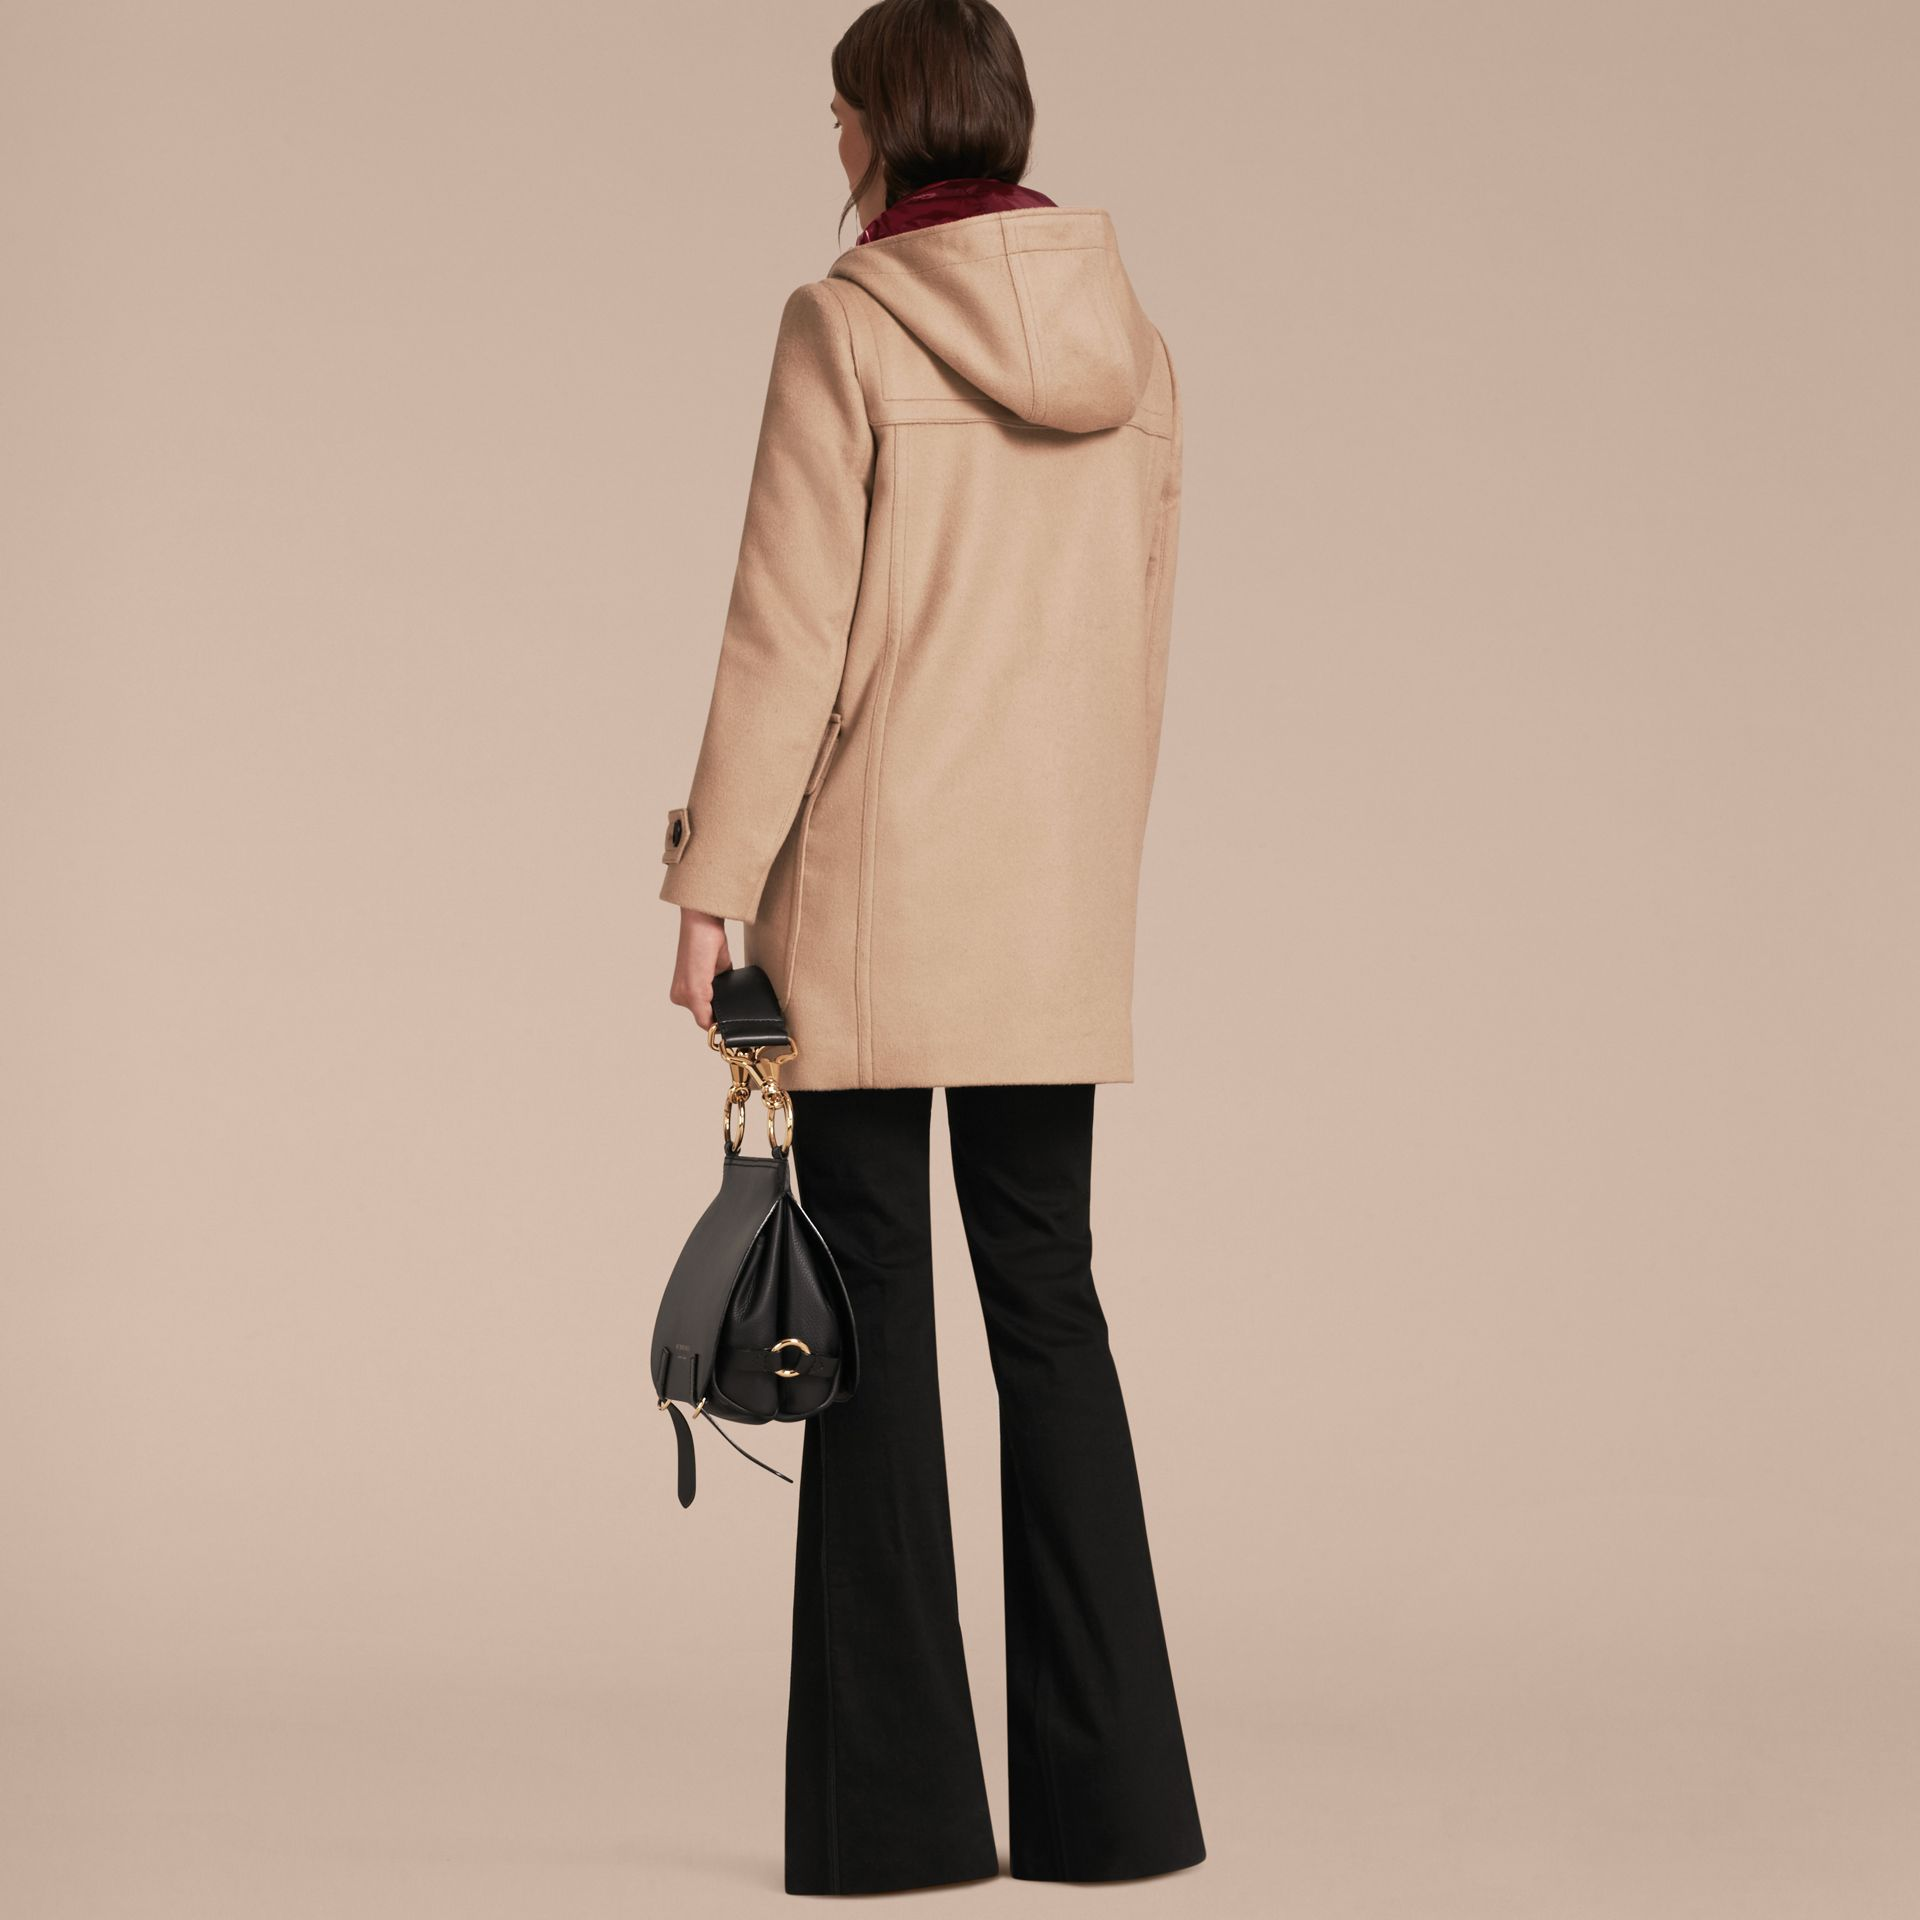 Camel Wool Duffle Coat with Detachable Hooded Down-filled Warmer Camel - gallery image 8